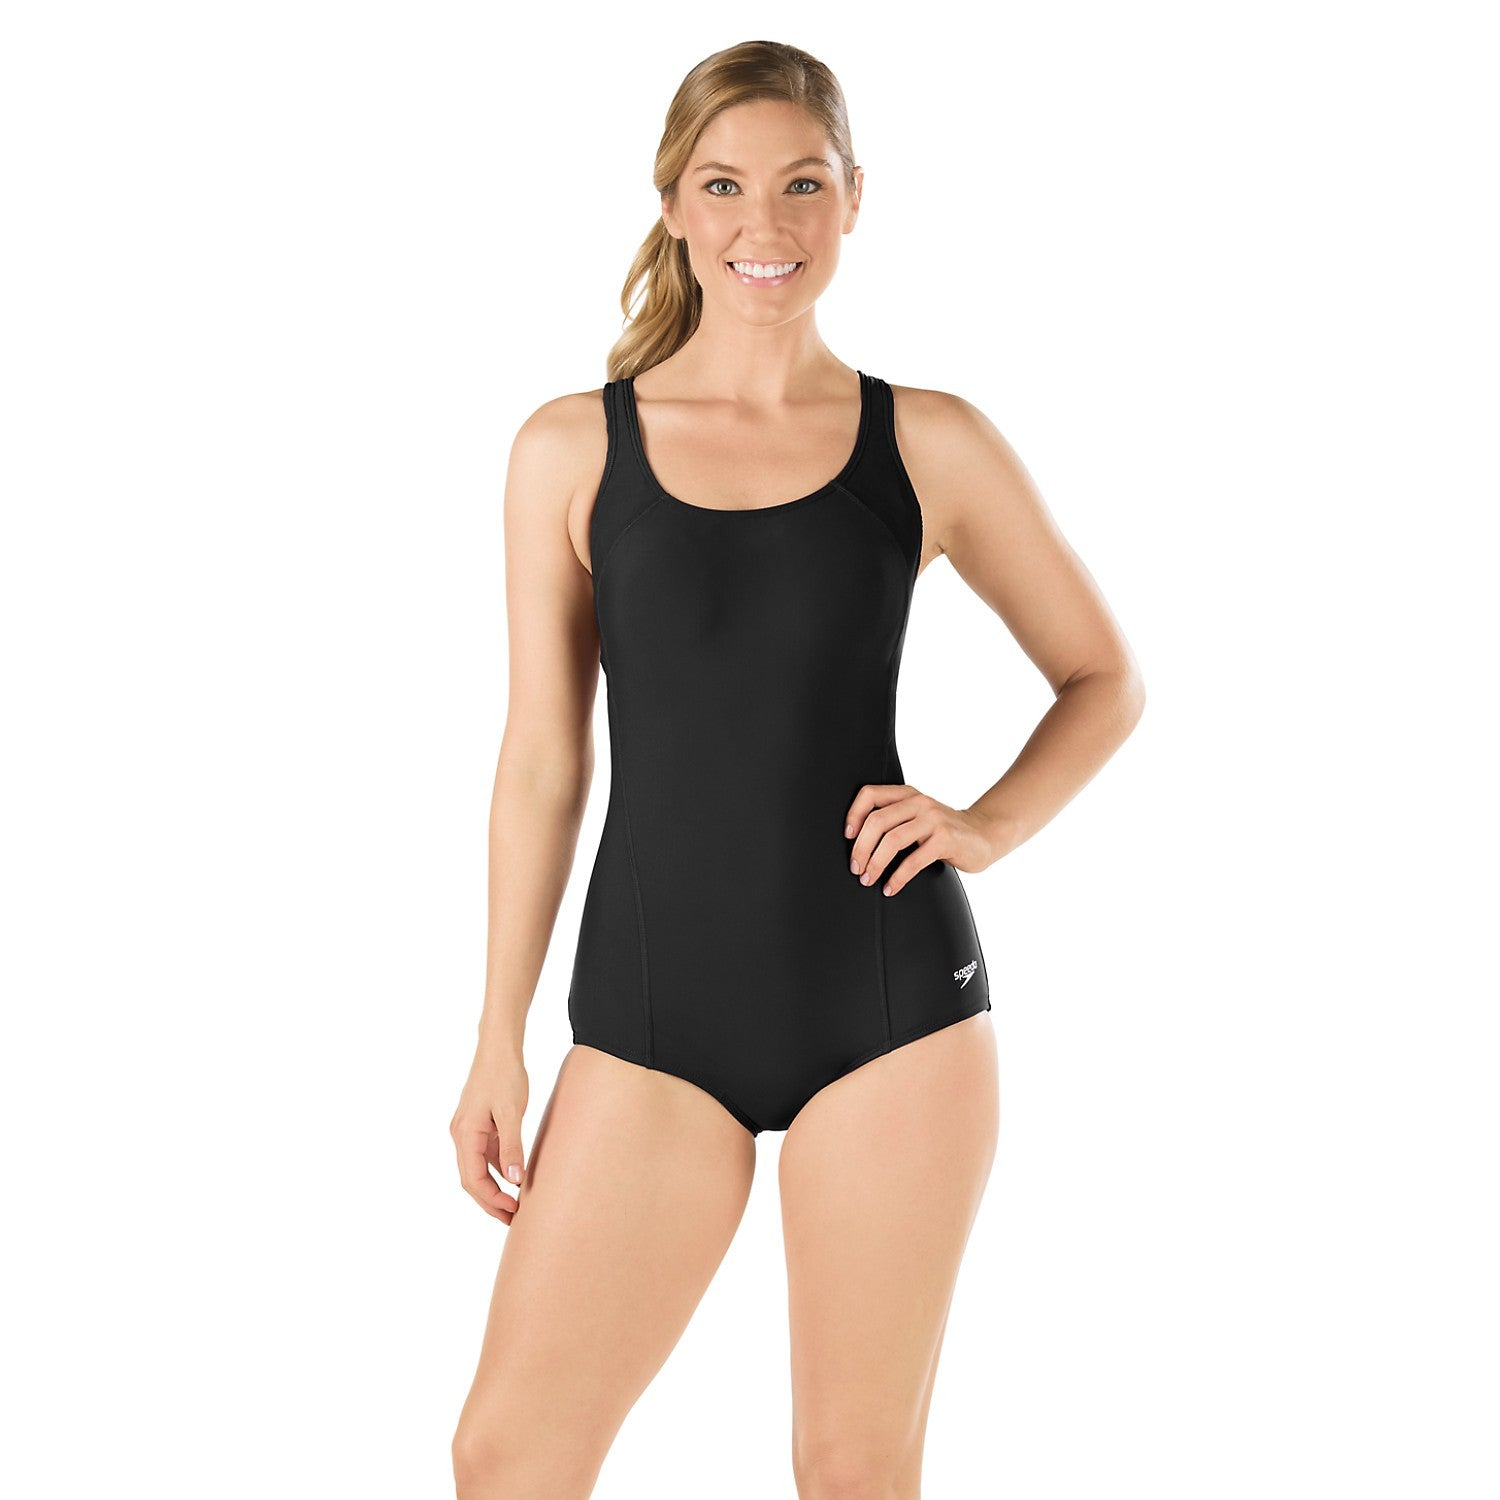 Speedo Swimsuit Conservative Ultraback With Princess Seam Powerflex Army Navy Now